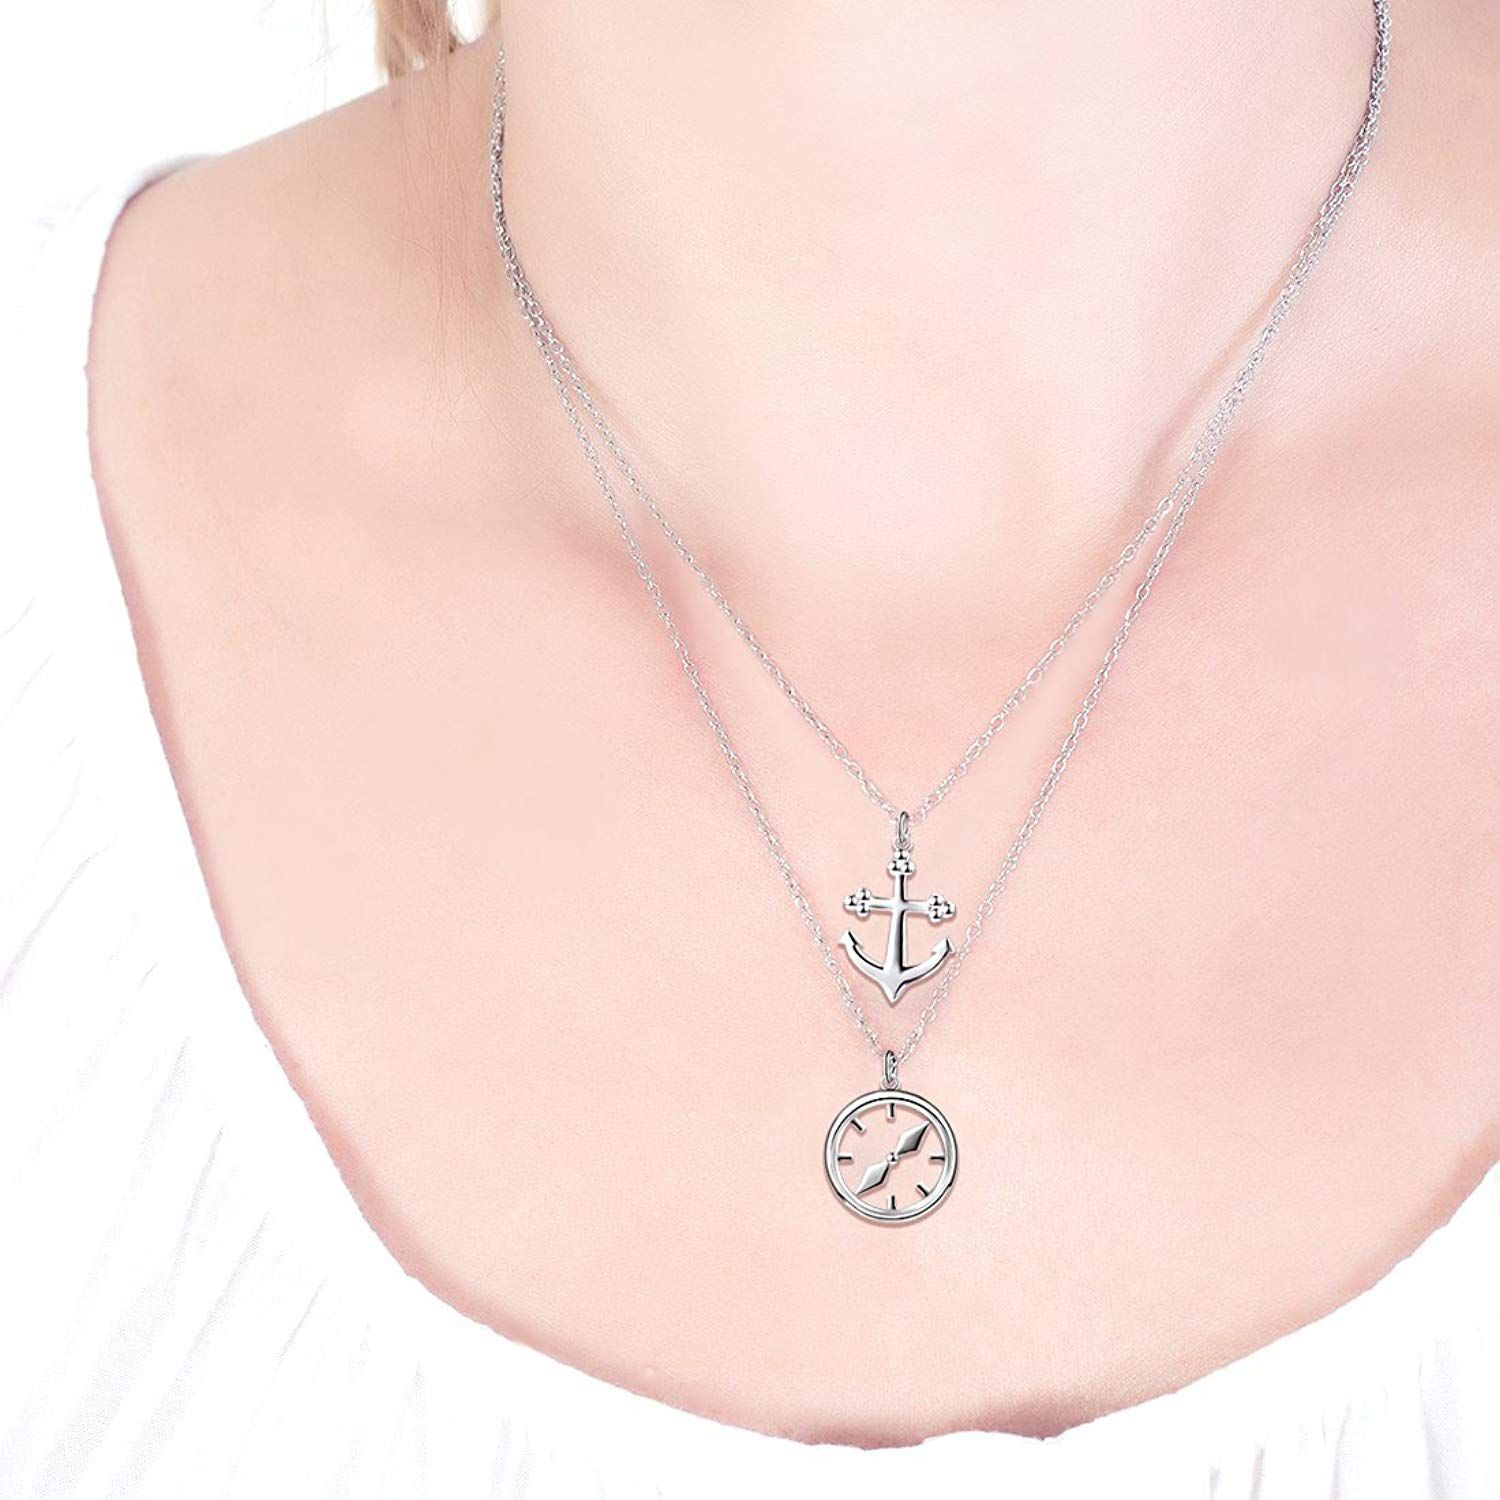 Silver Flower pendant for her handmade on sterling silver chain boho dainty necklace gift nickel free 925 pendant for her girlfriend gift